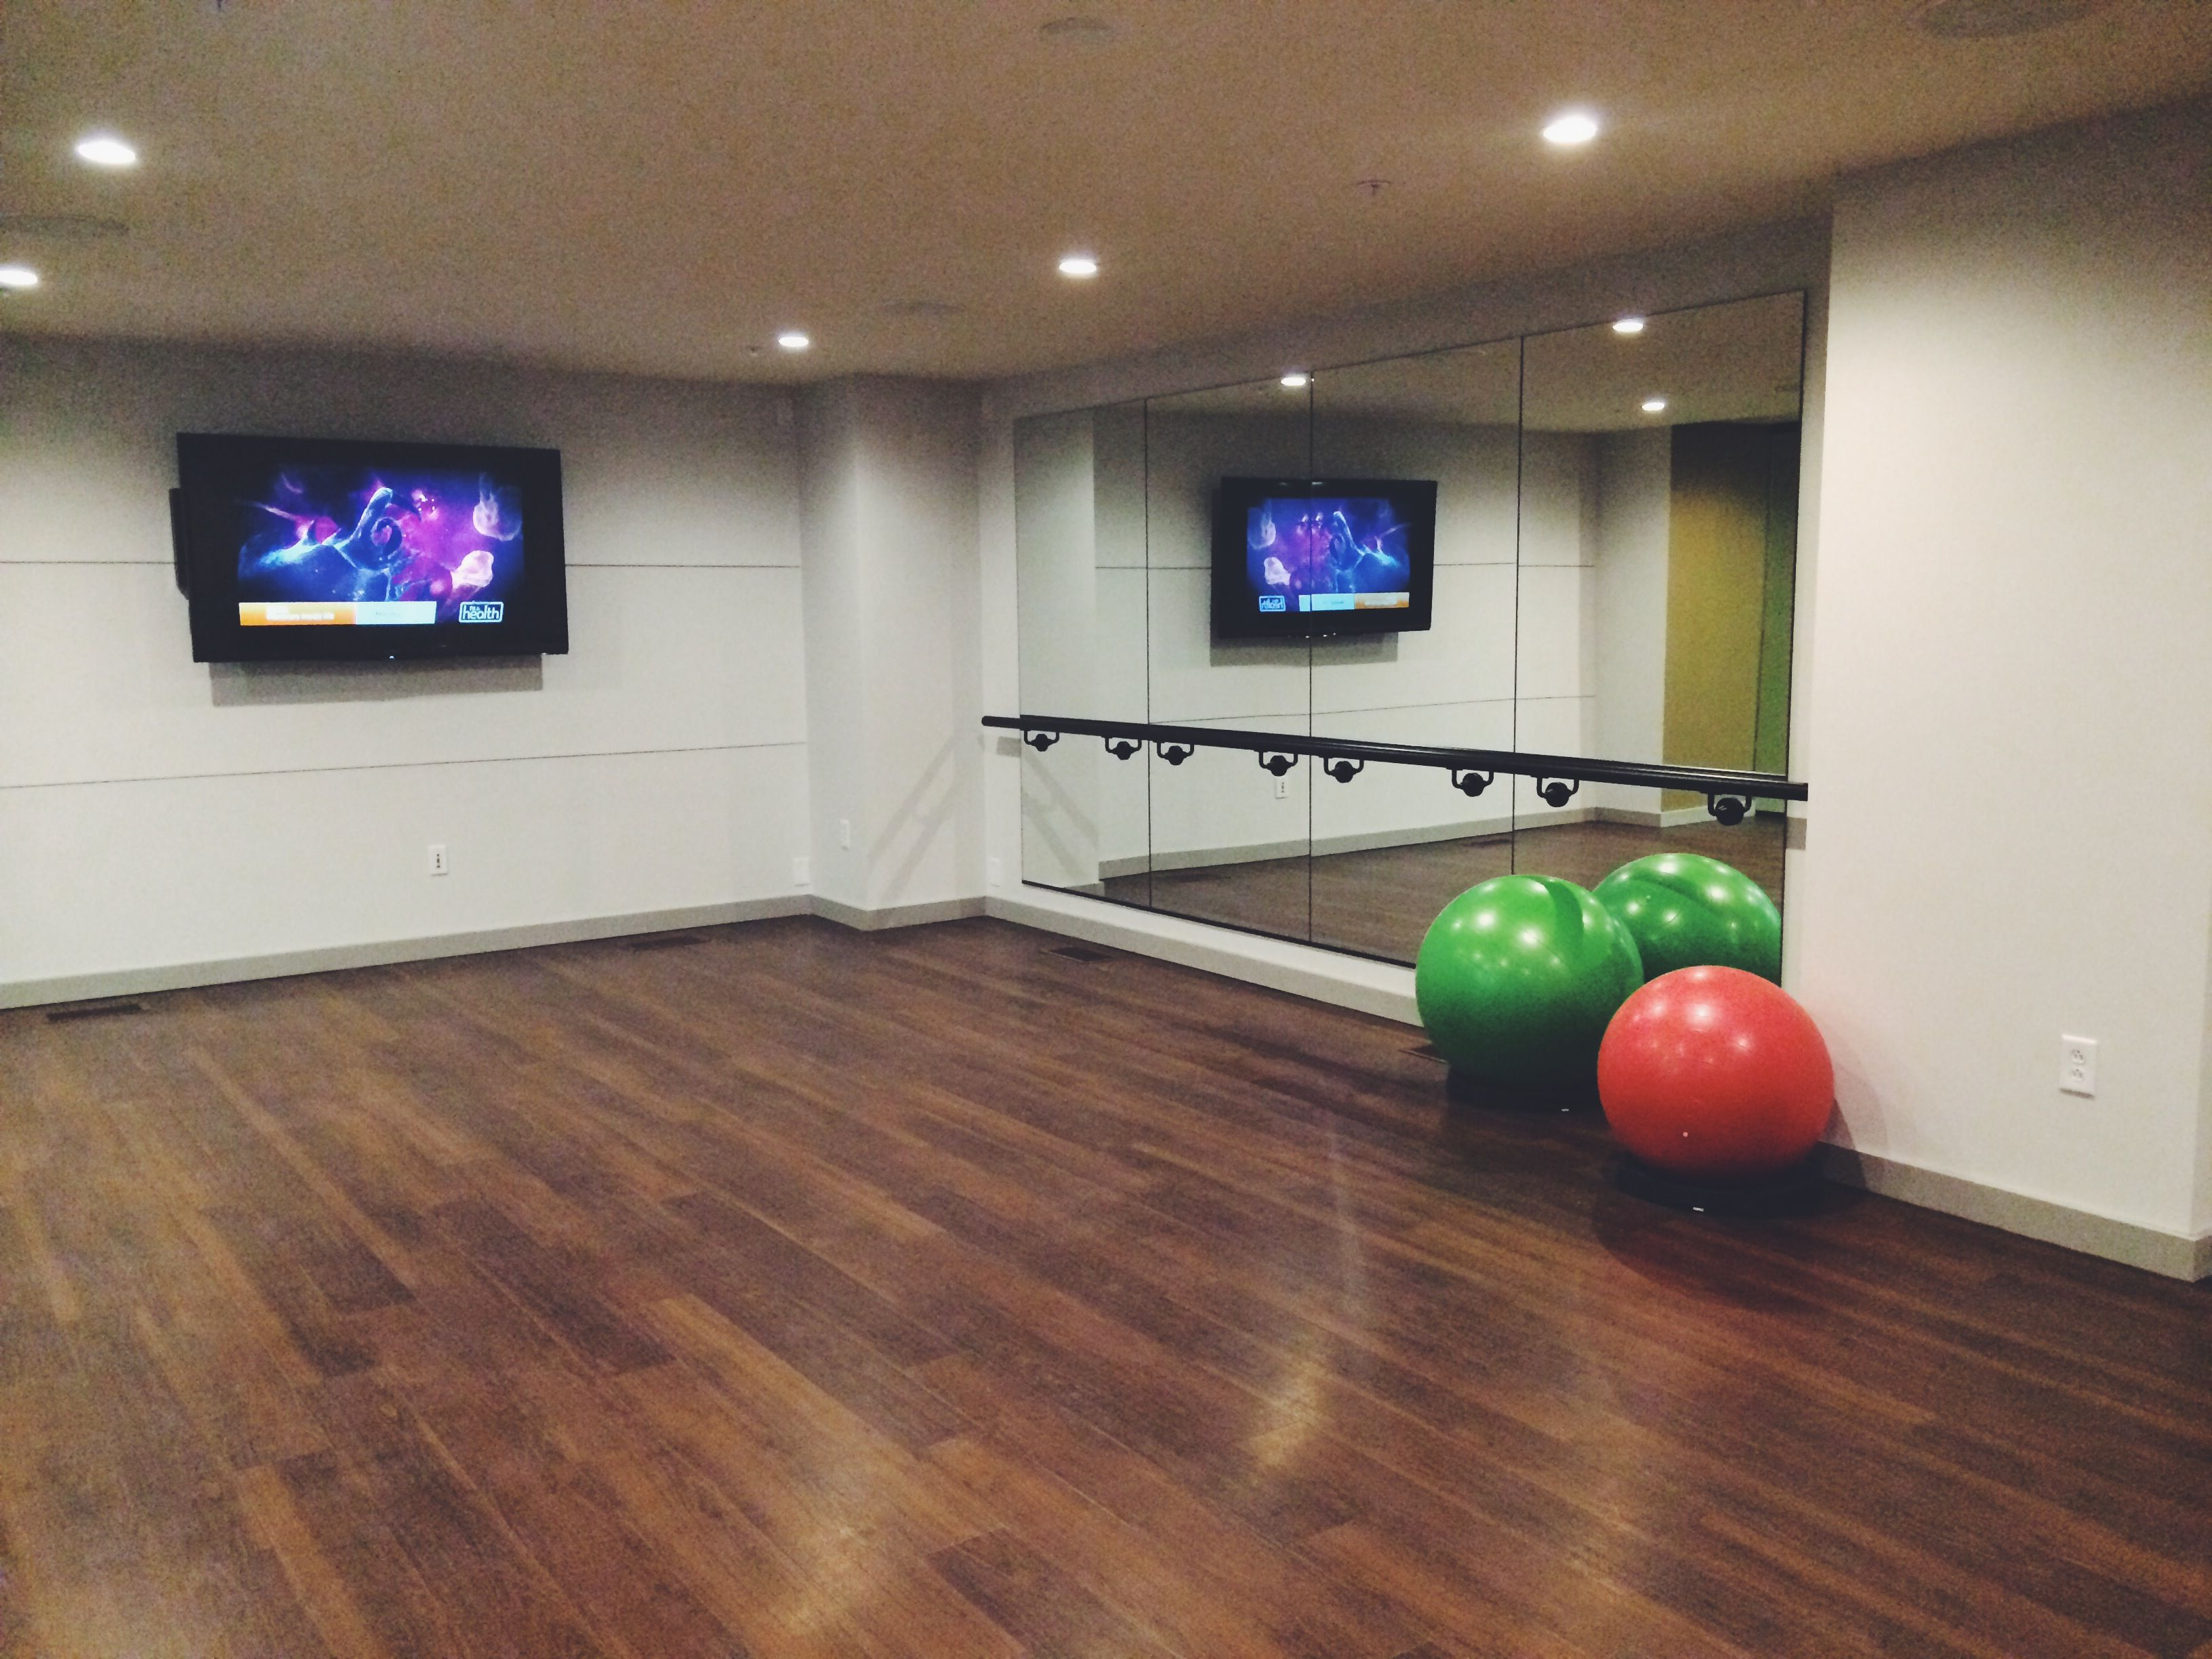 Pin By Sky House On Sky House Inside And Out Workout Rooms House Inside Urban Living